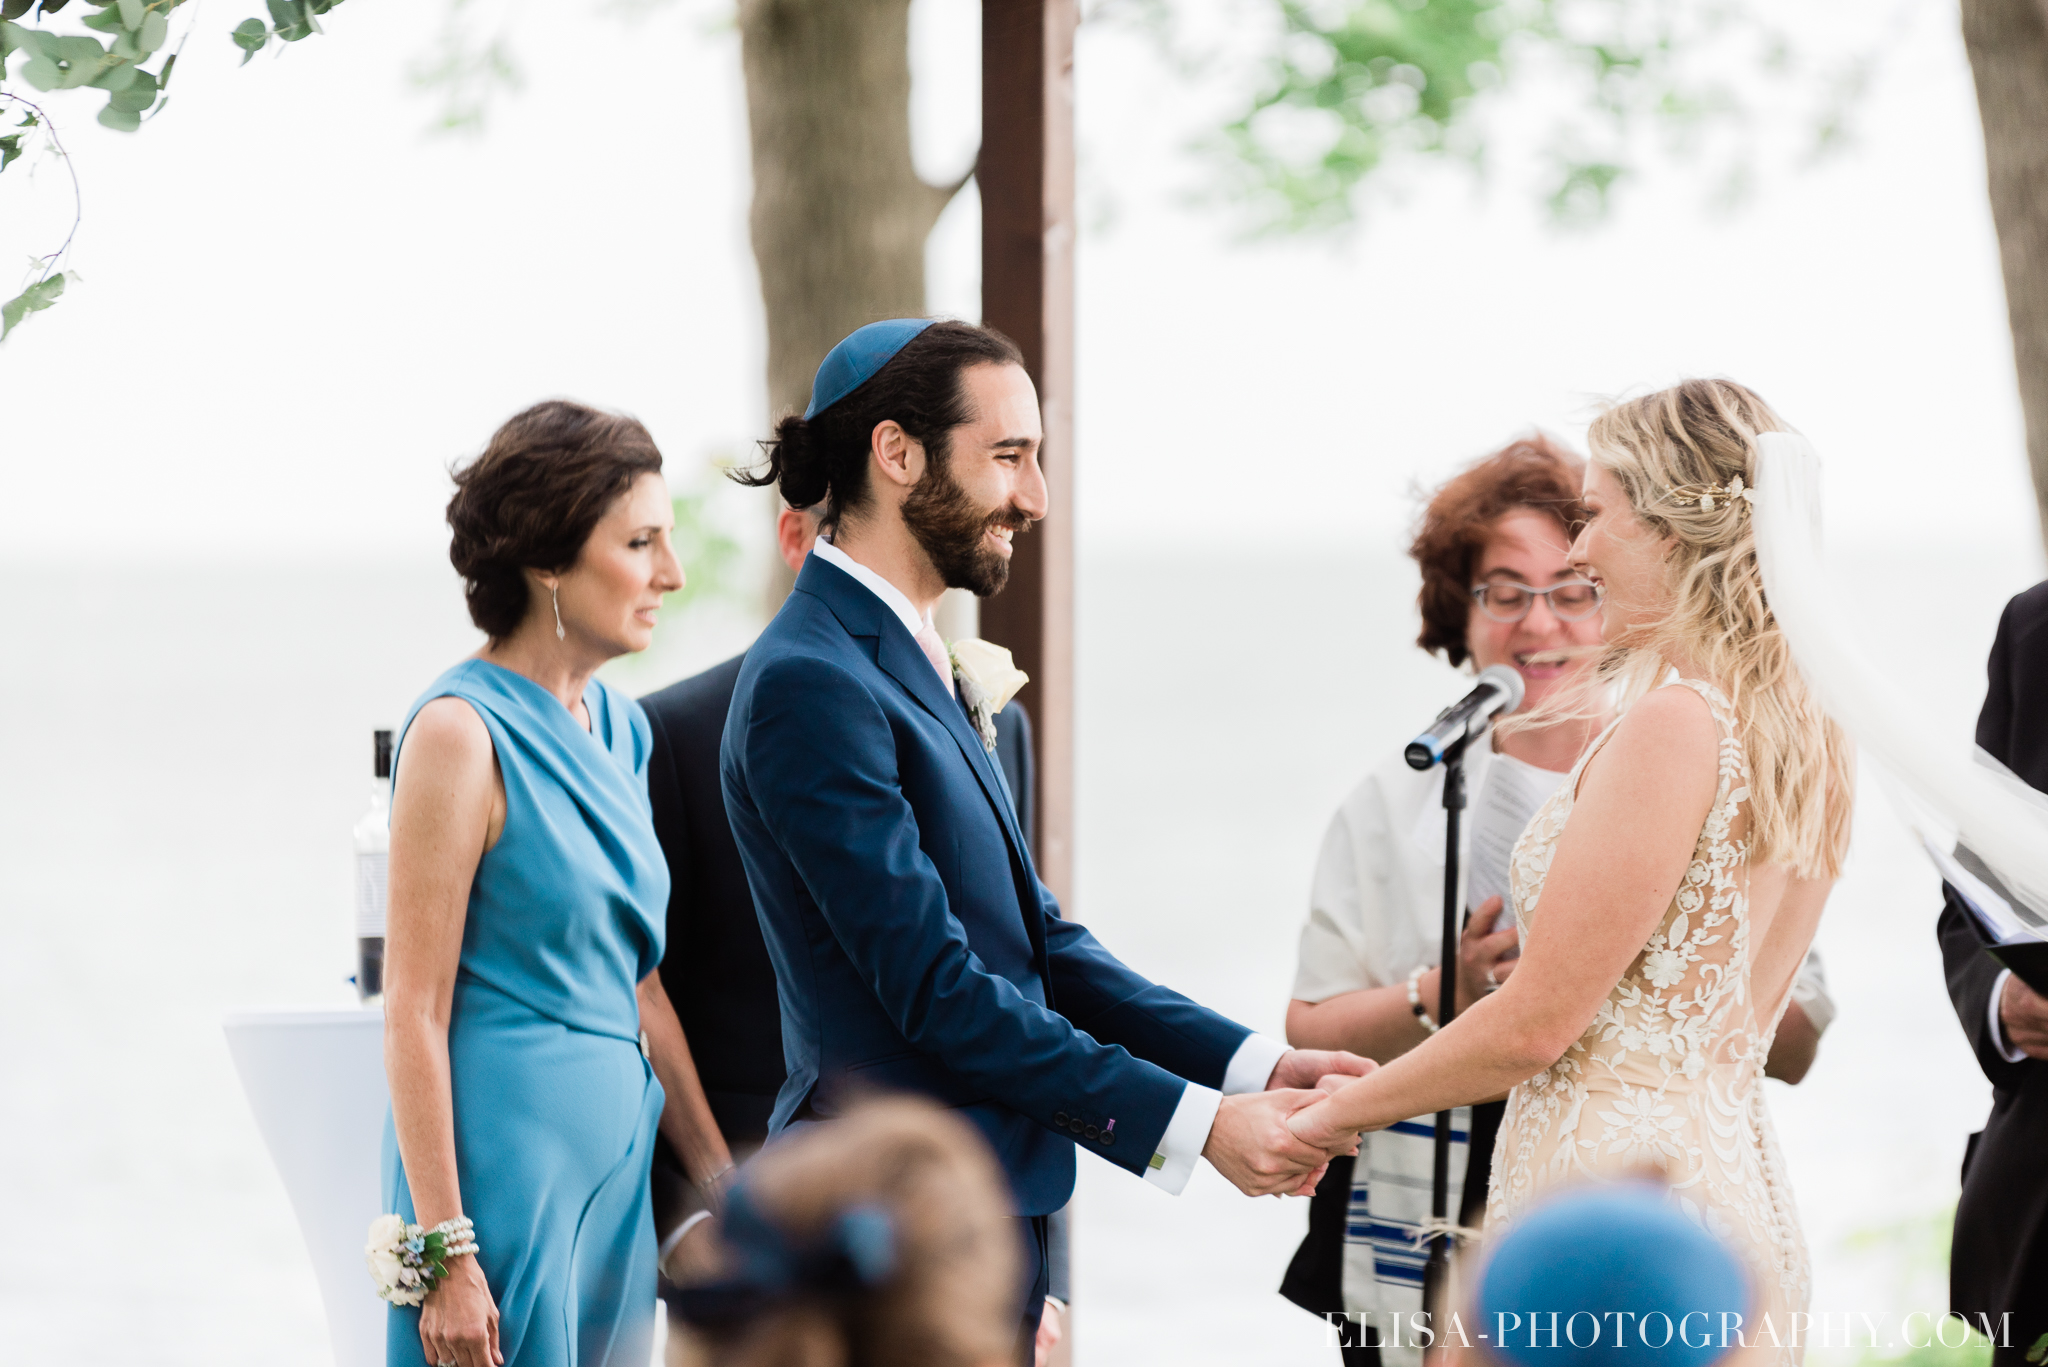 photo mariage forest stream club montreal riverfront wedding ceremony elisa photographer 9715 - An elegant wedding under the marquee at the Forest and Stream Club in Montreal